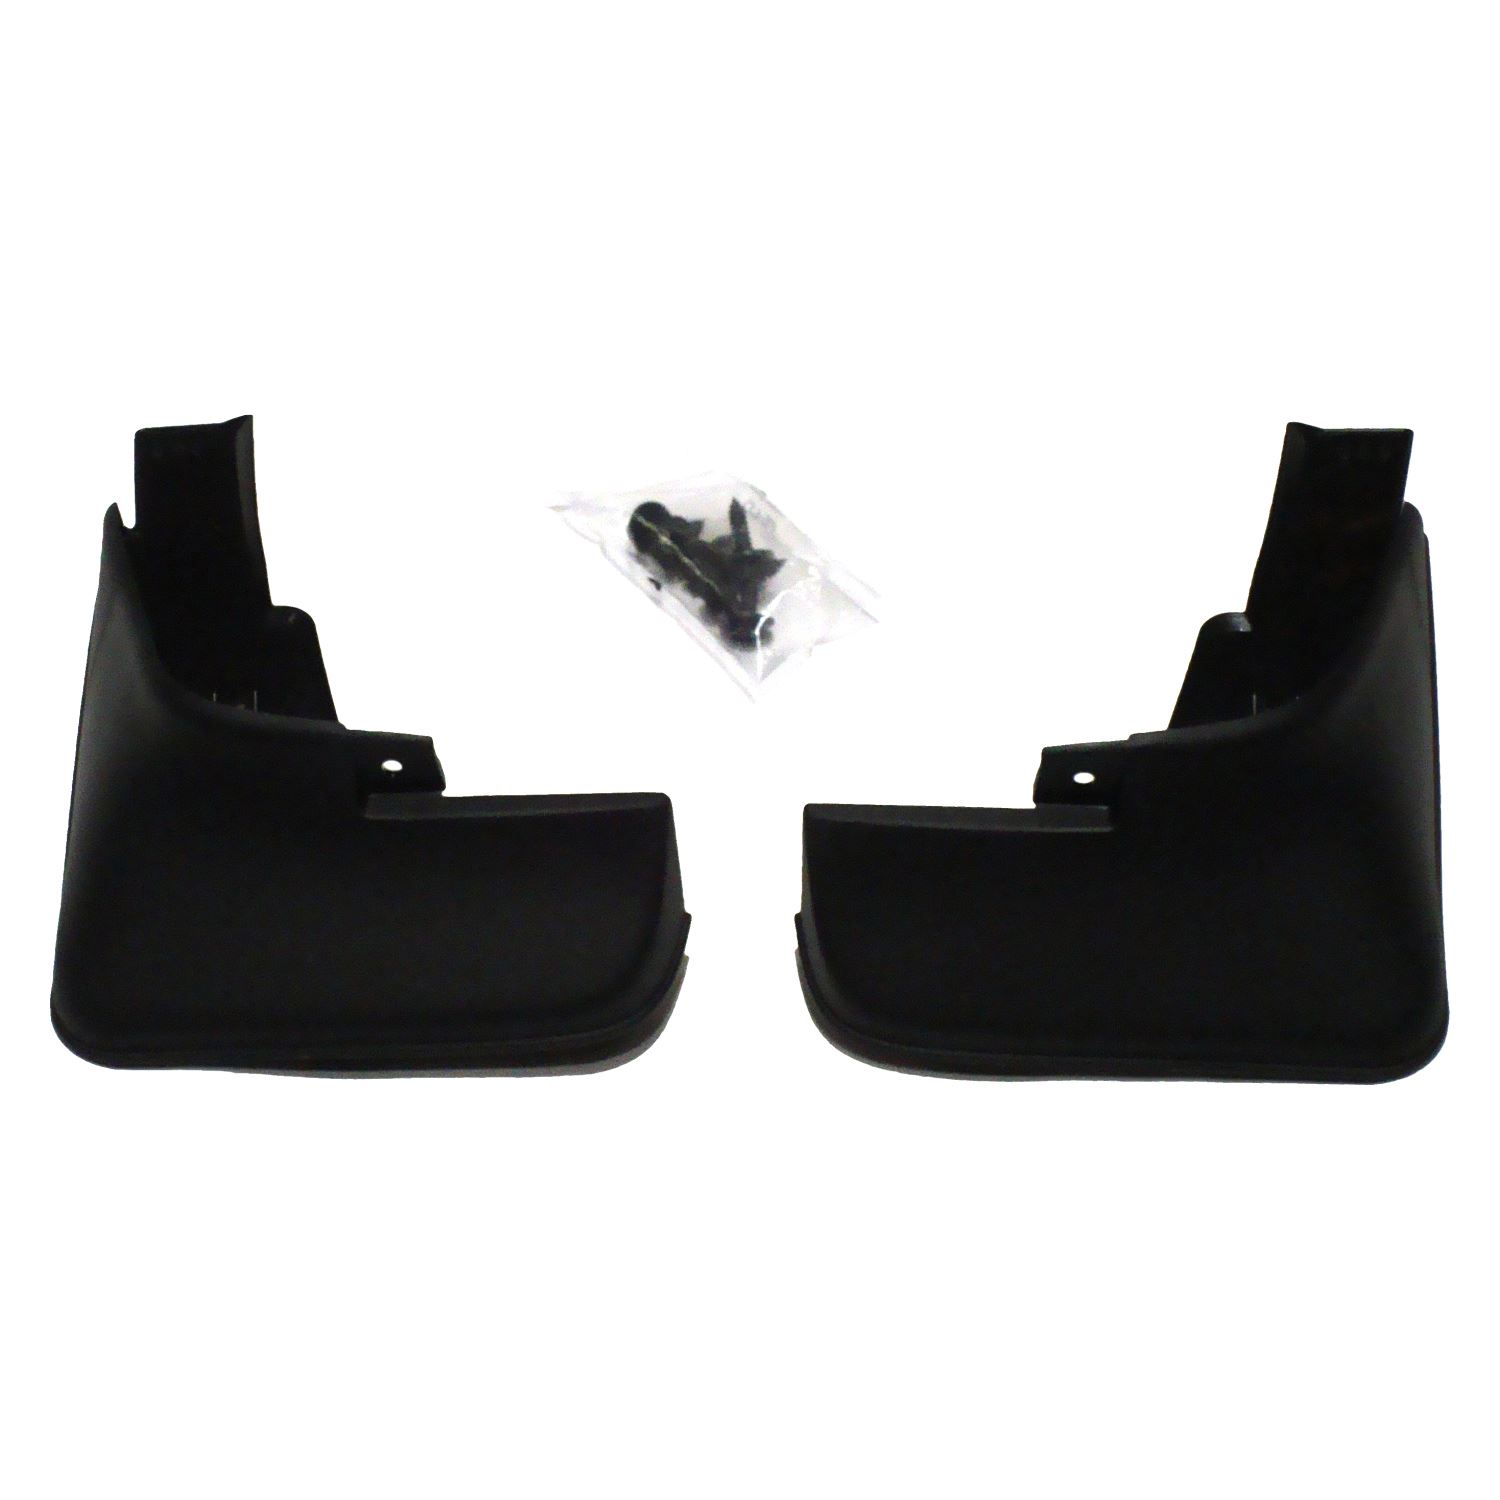 genuine toyota corolla verso mud flaps mudflaps splash. Black Bedroom Furniture Sets. Home Design Ideas